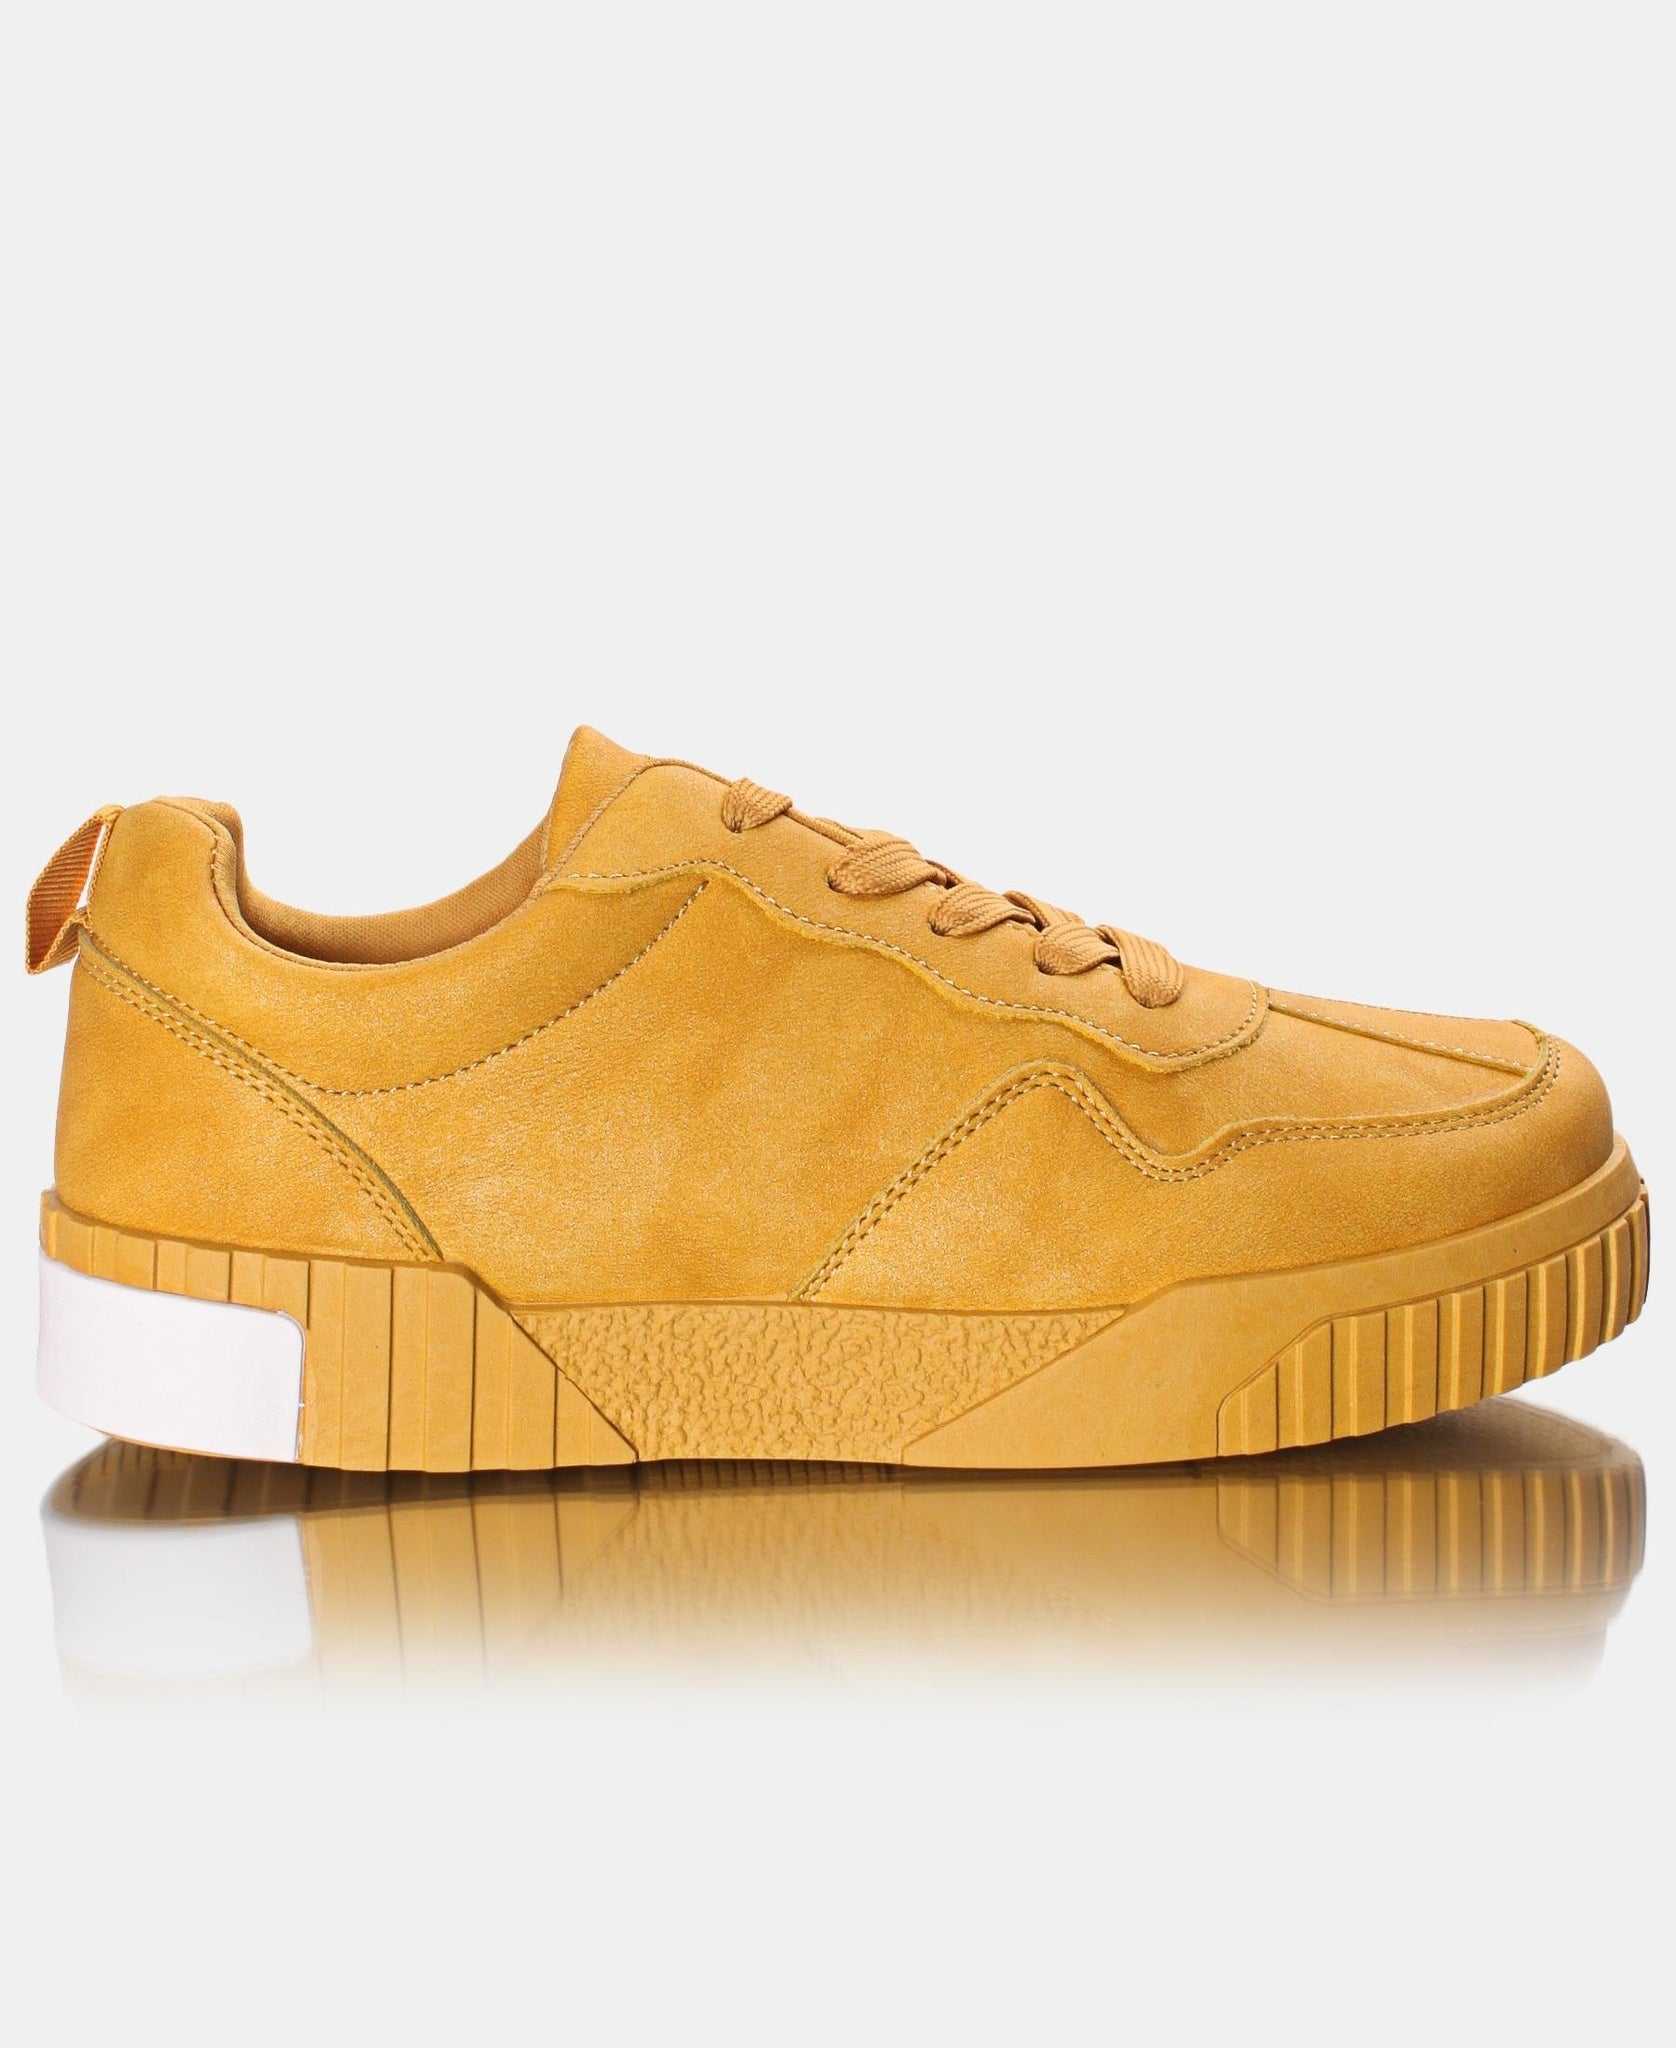 Ladies' Zest Sneakers - Mustard